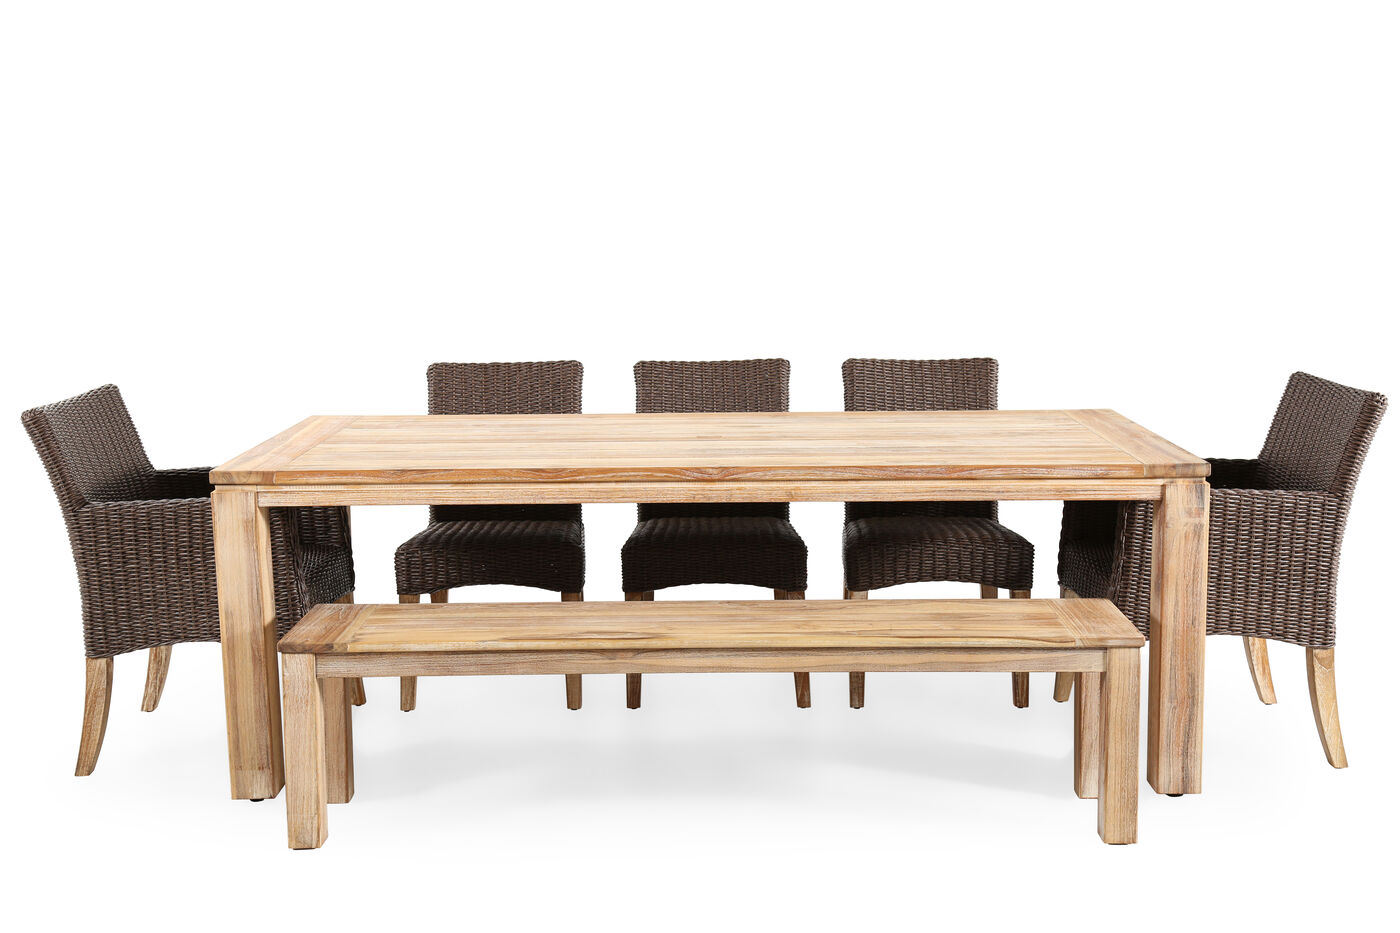 World source vineyard haven teak dining table mathis brothers world source vineyard haven teak dining table geotapseo Image collections